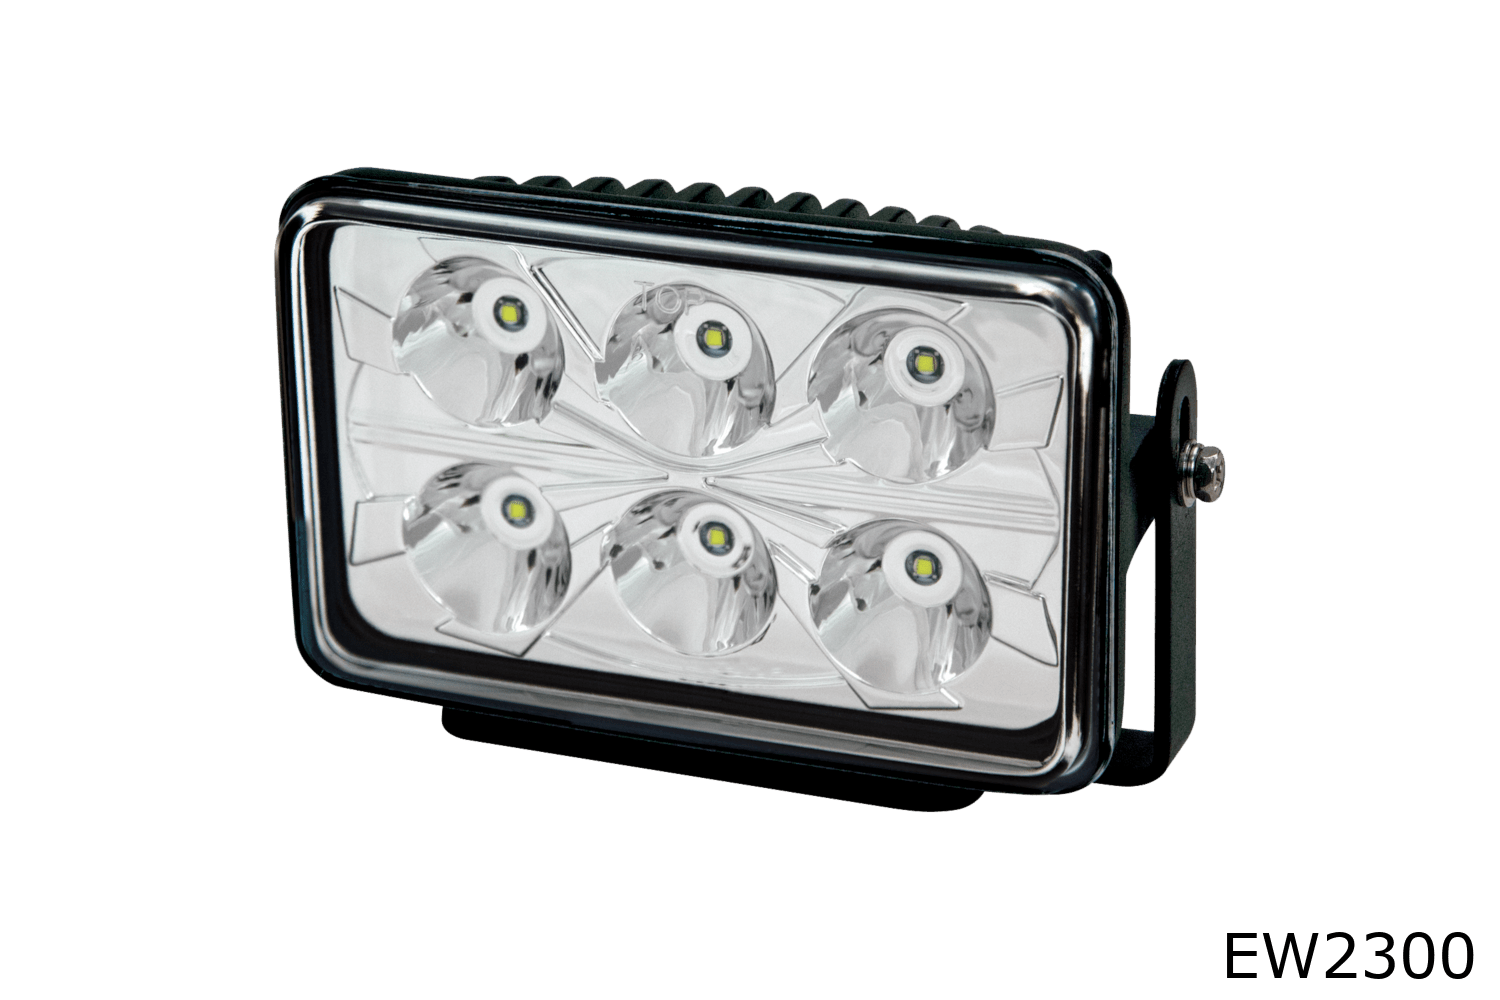 ecco heavy duty worklamp